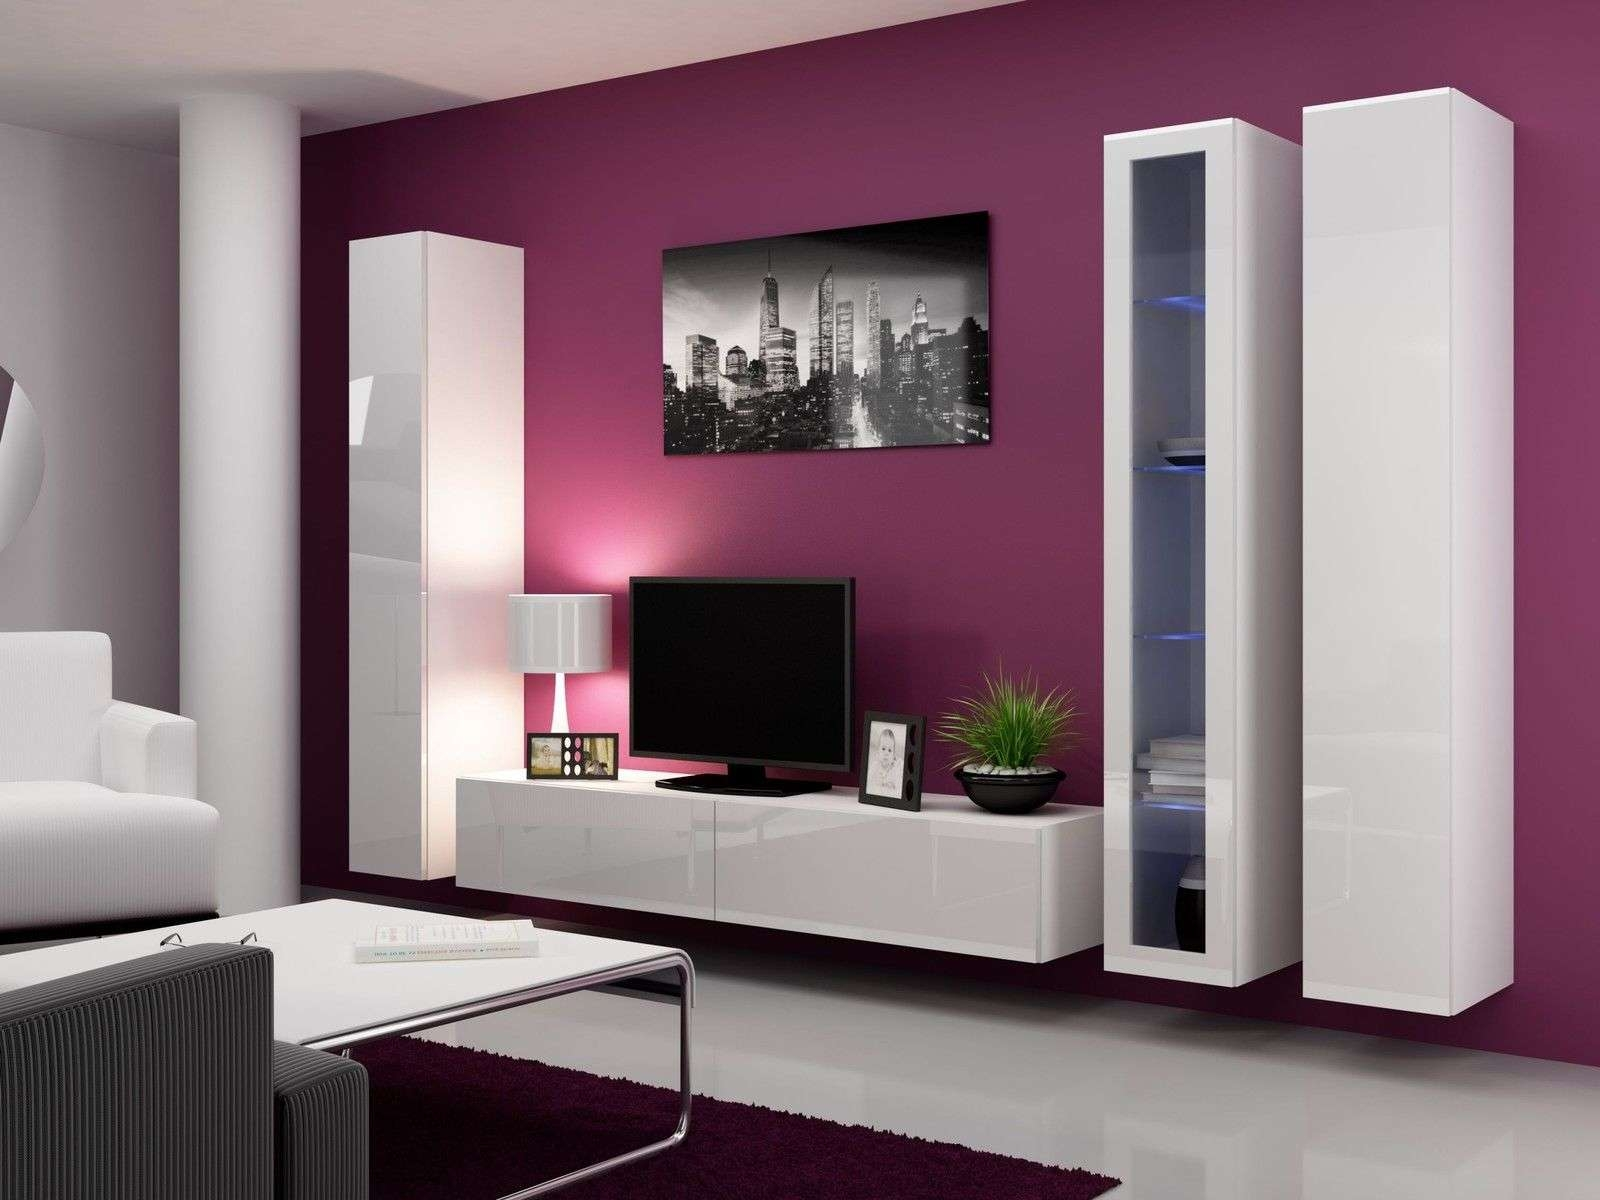 Floating Tv Stand For Small Space, Perfect! – Home Decorreisa For Wall Display Units And Tv Cabinets (View 2 of 20)